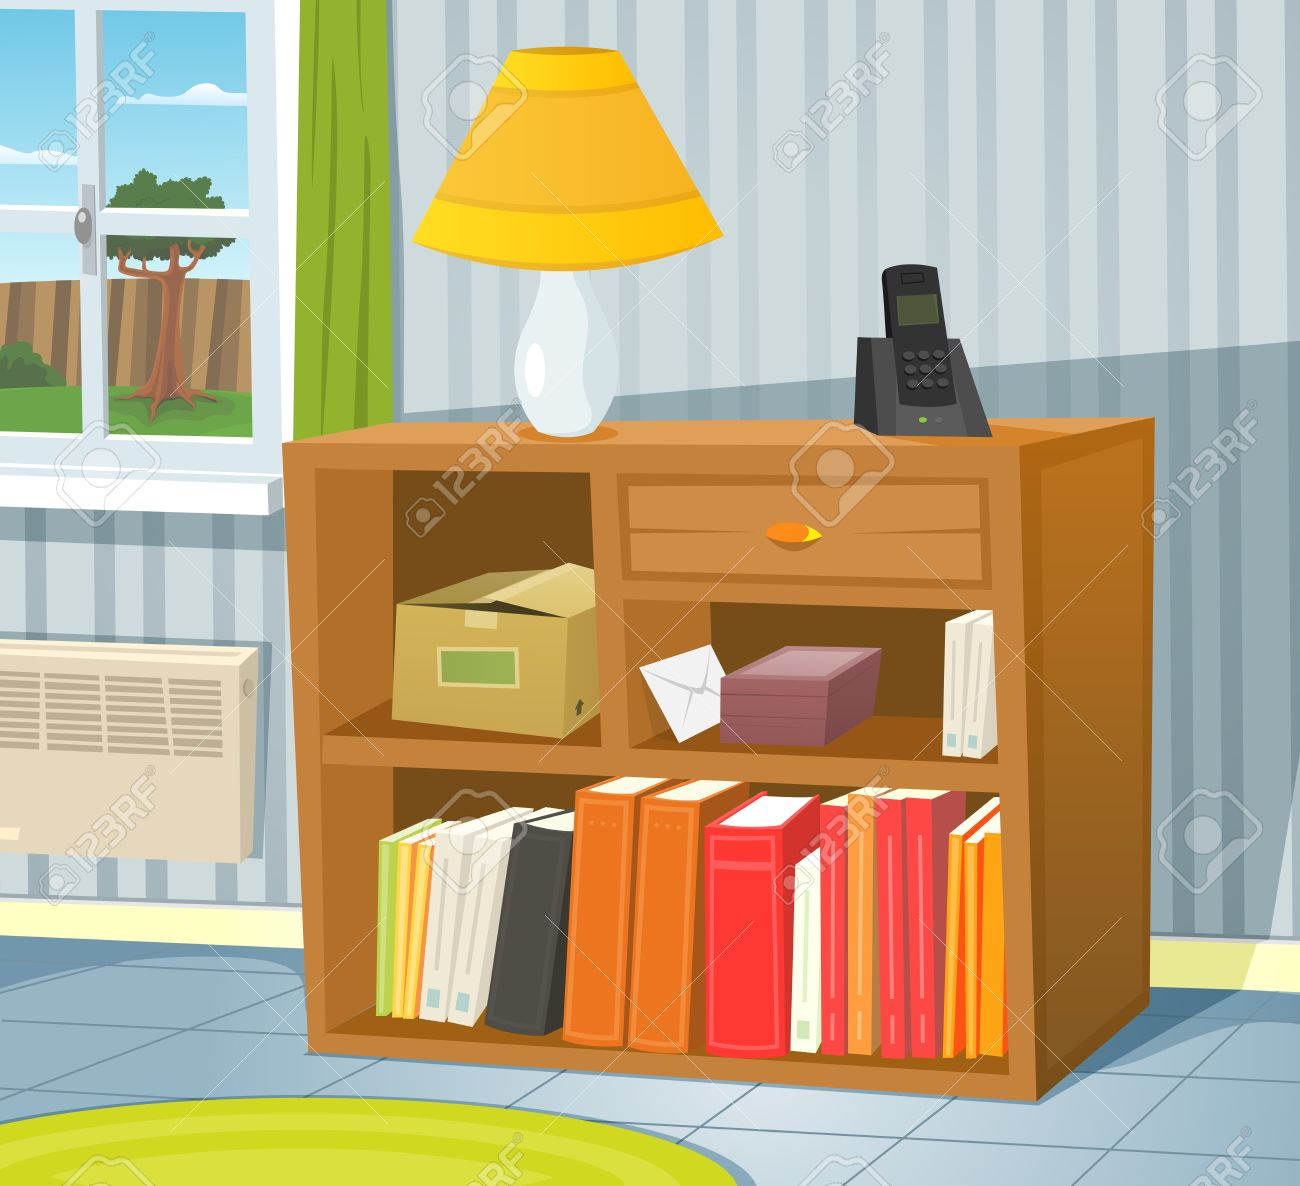 Illustration Of A Cartoon Room Interior Scene With Bookshelf On The Wall And Spring Or Summer